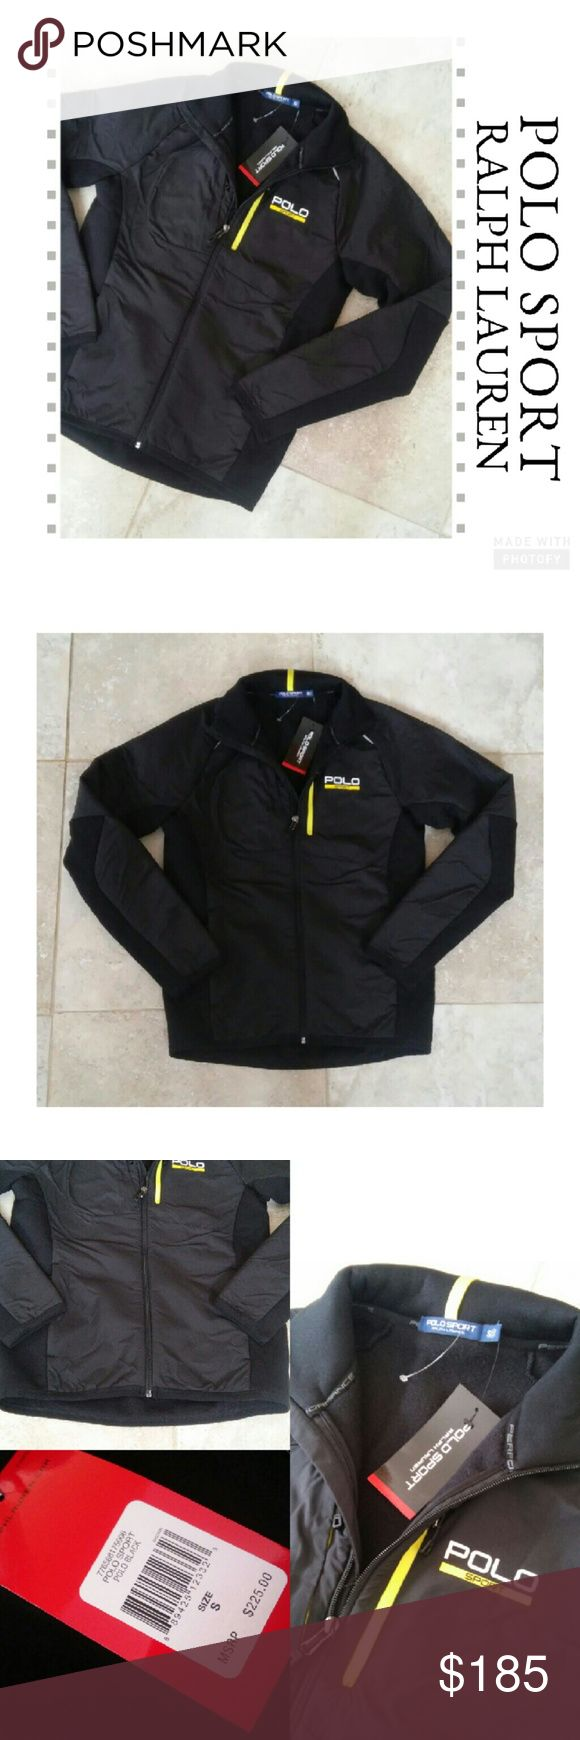 {Polo Sport Ralph Lauren} Hybrid Tech Jacket New with tags! Polo Sport Ralph Lauren Hybrid Tech Jacket Black & yellow Two front pockets & chest pocket Backside has zippered pocket Size small  MSRP $225 Polo Sport Ralph Lauren Jackets & Coats Performance Jackets